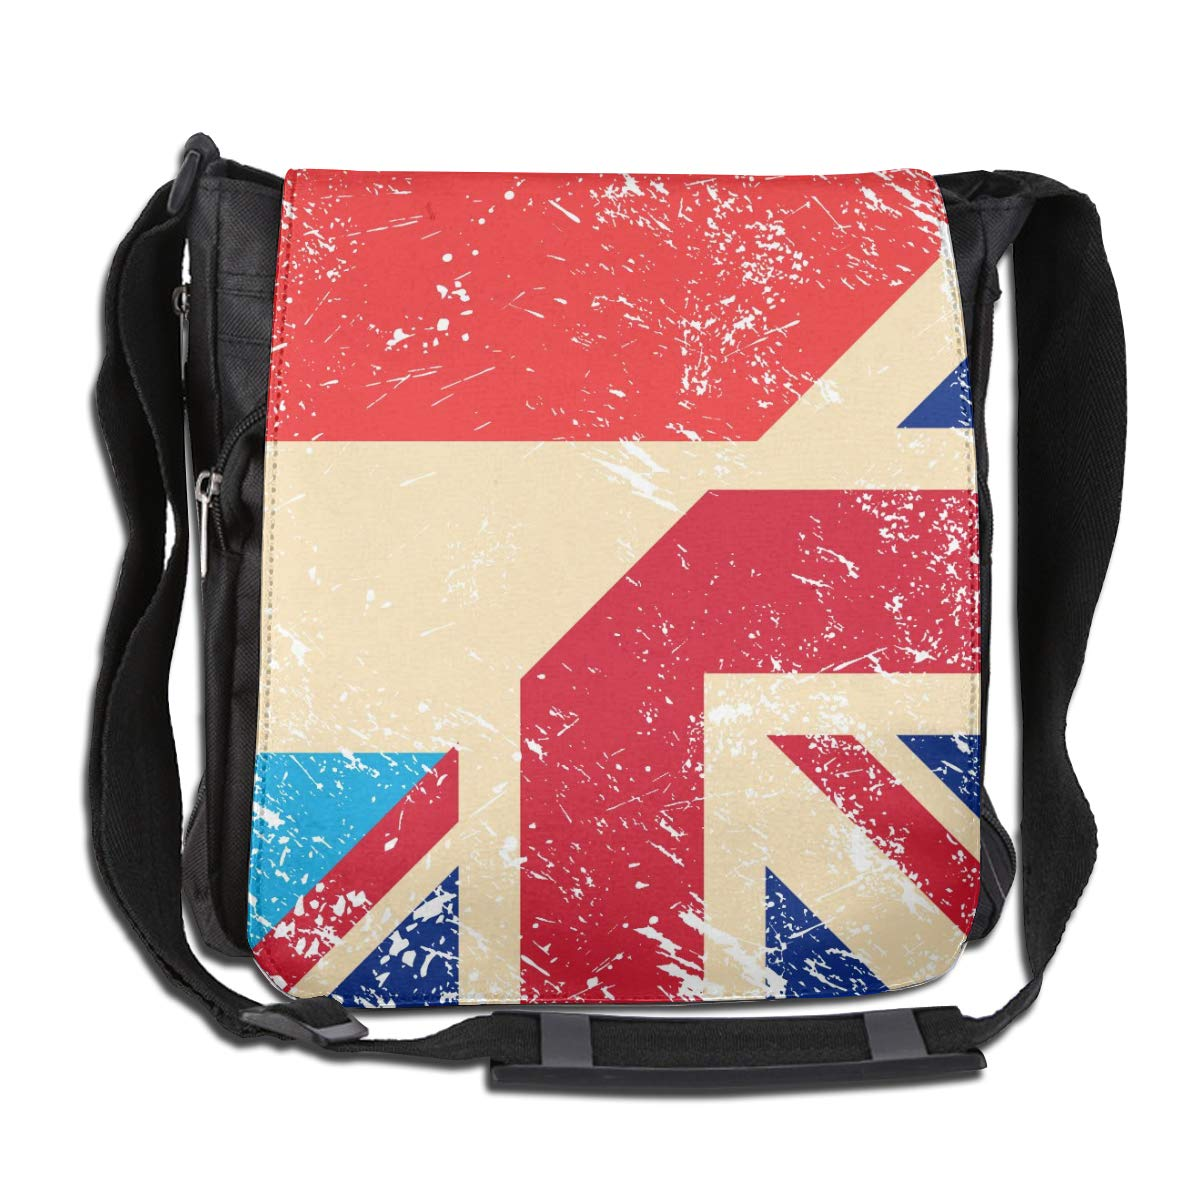 Unisex Casual Satchel Messenger Bags Birtish And Luxembourg Retro Flag Crossbody Shoulder Bag School Bags For School//Work//Trips